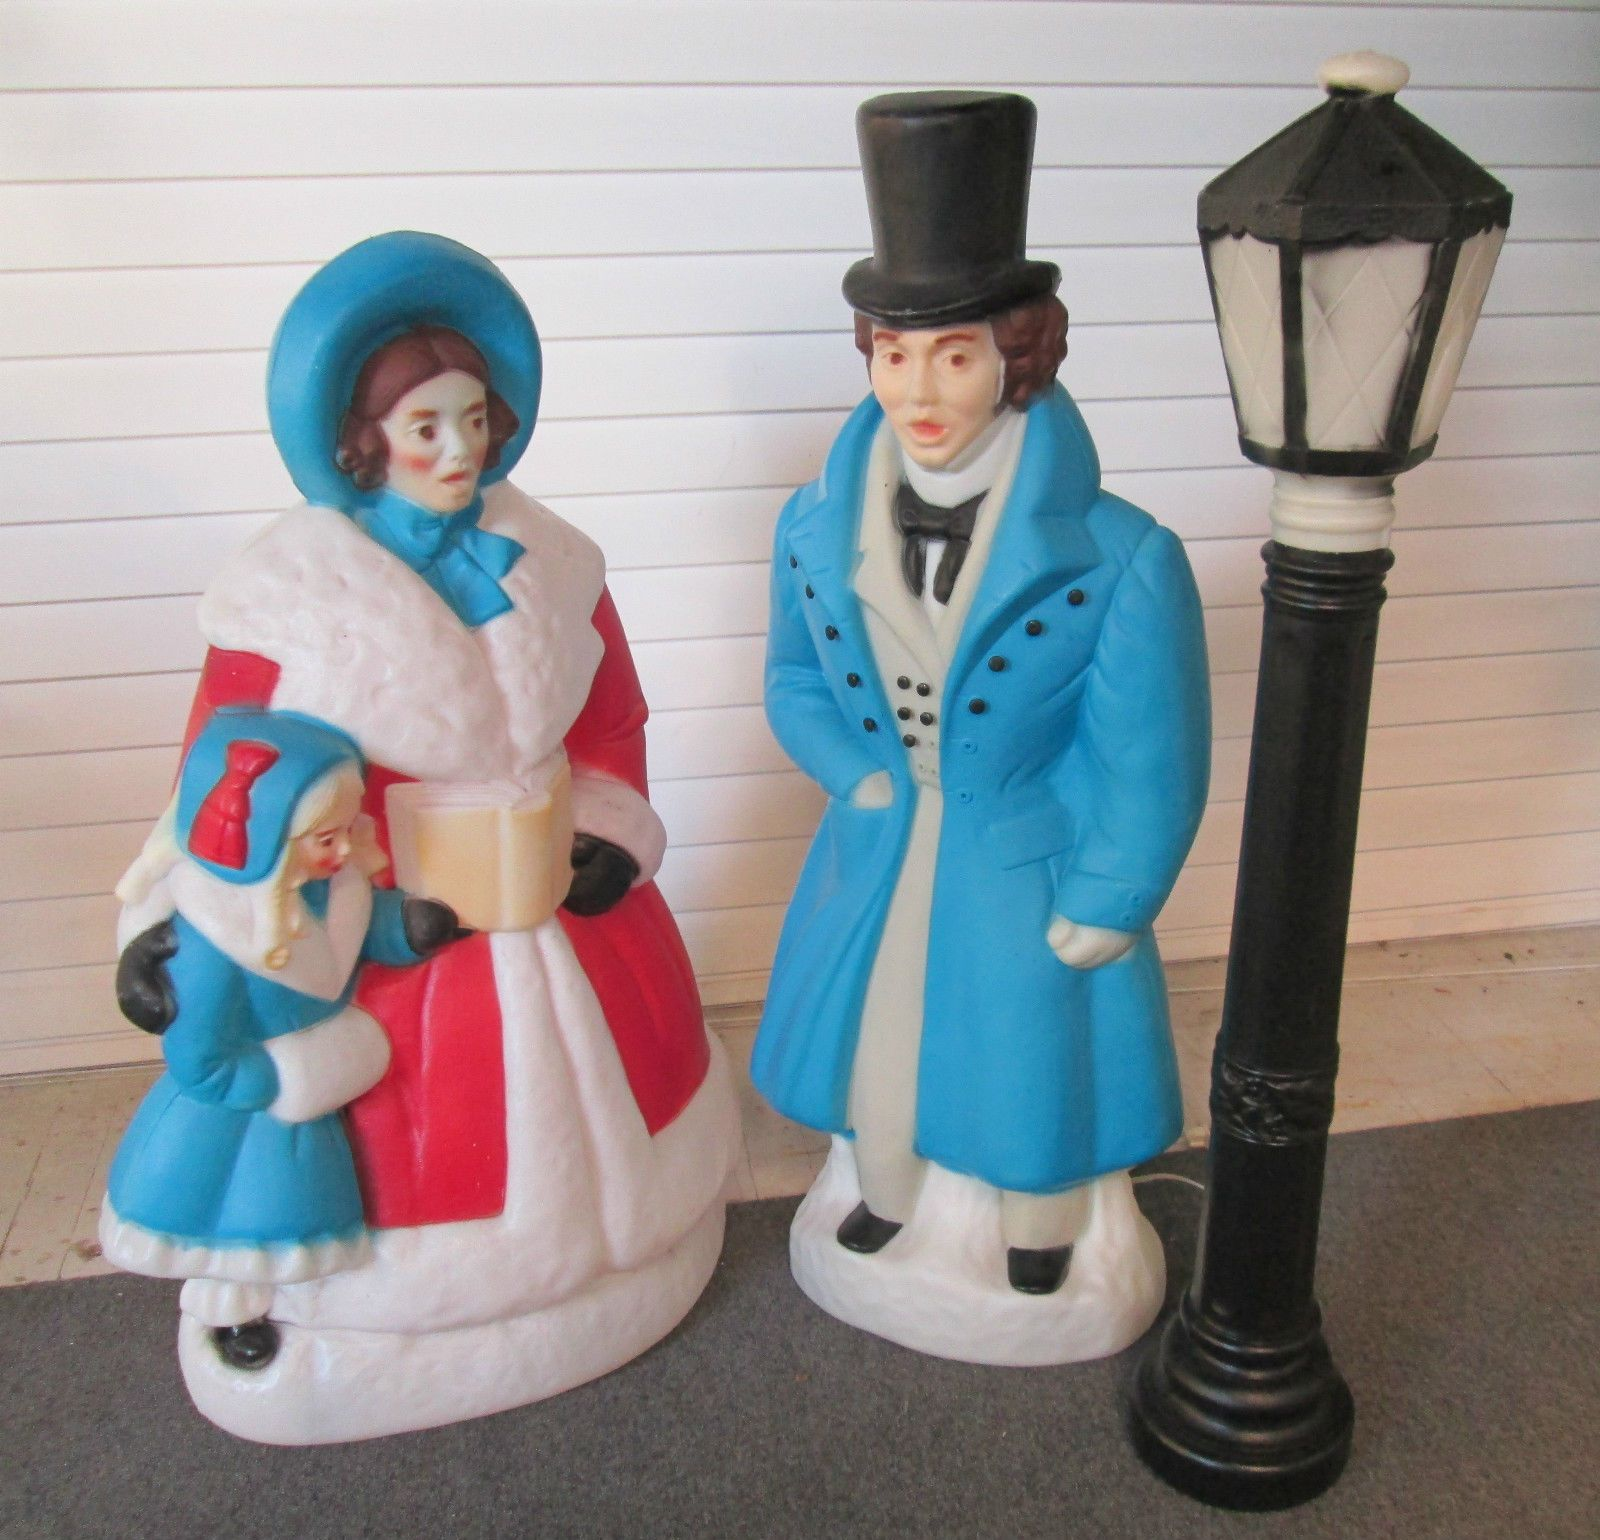 Vintage Blow Mold Christmas Carolers Christmas Lawn Decor: Victorian Carolers Dickens Christmas Blow Mold Light Up